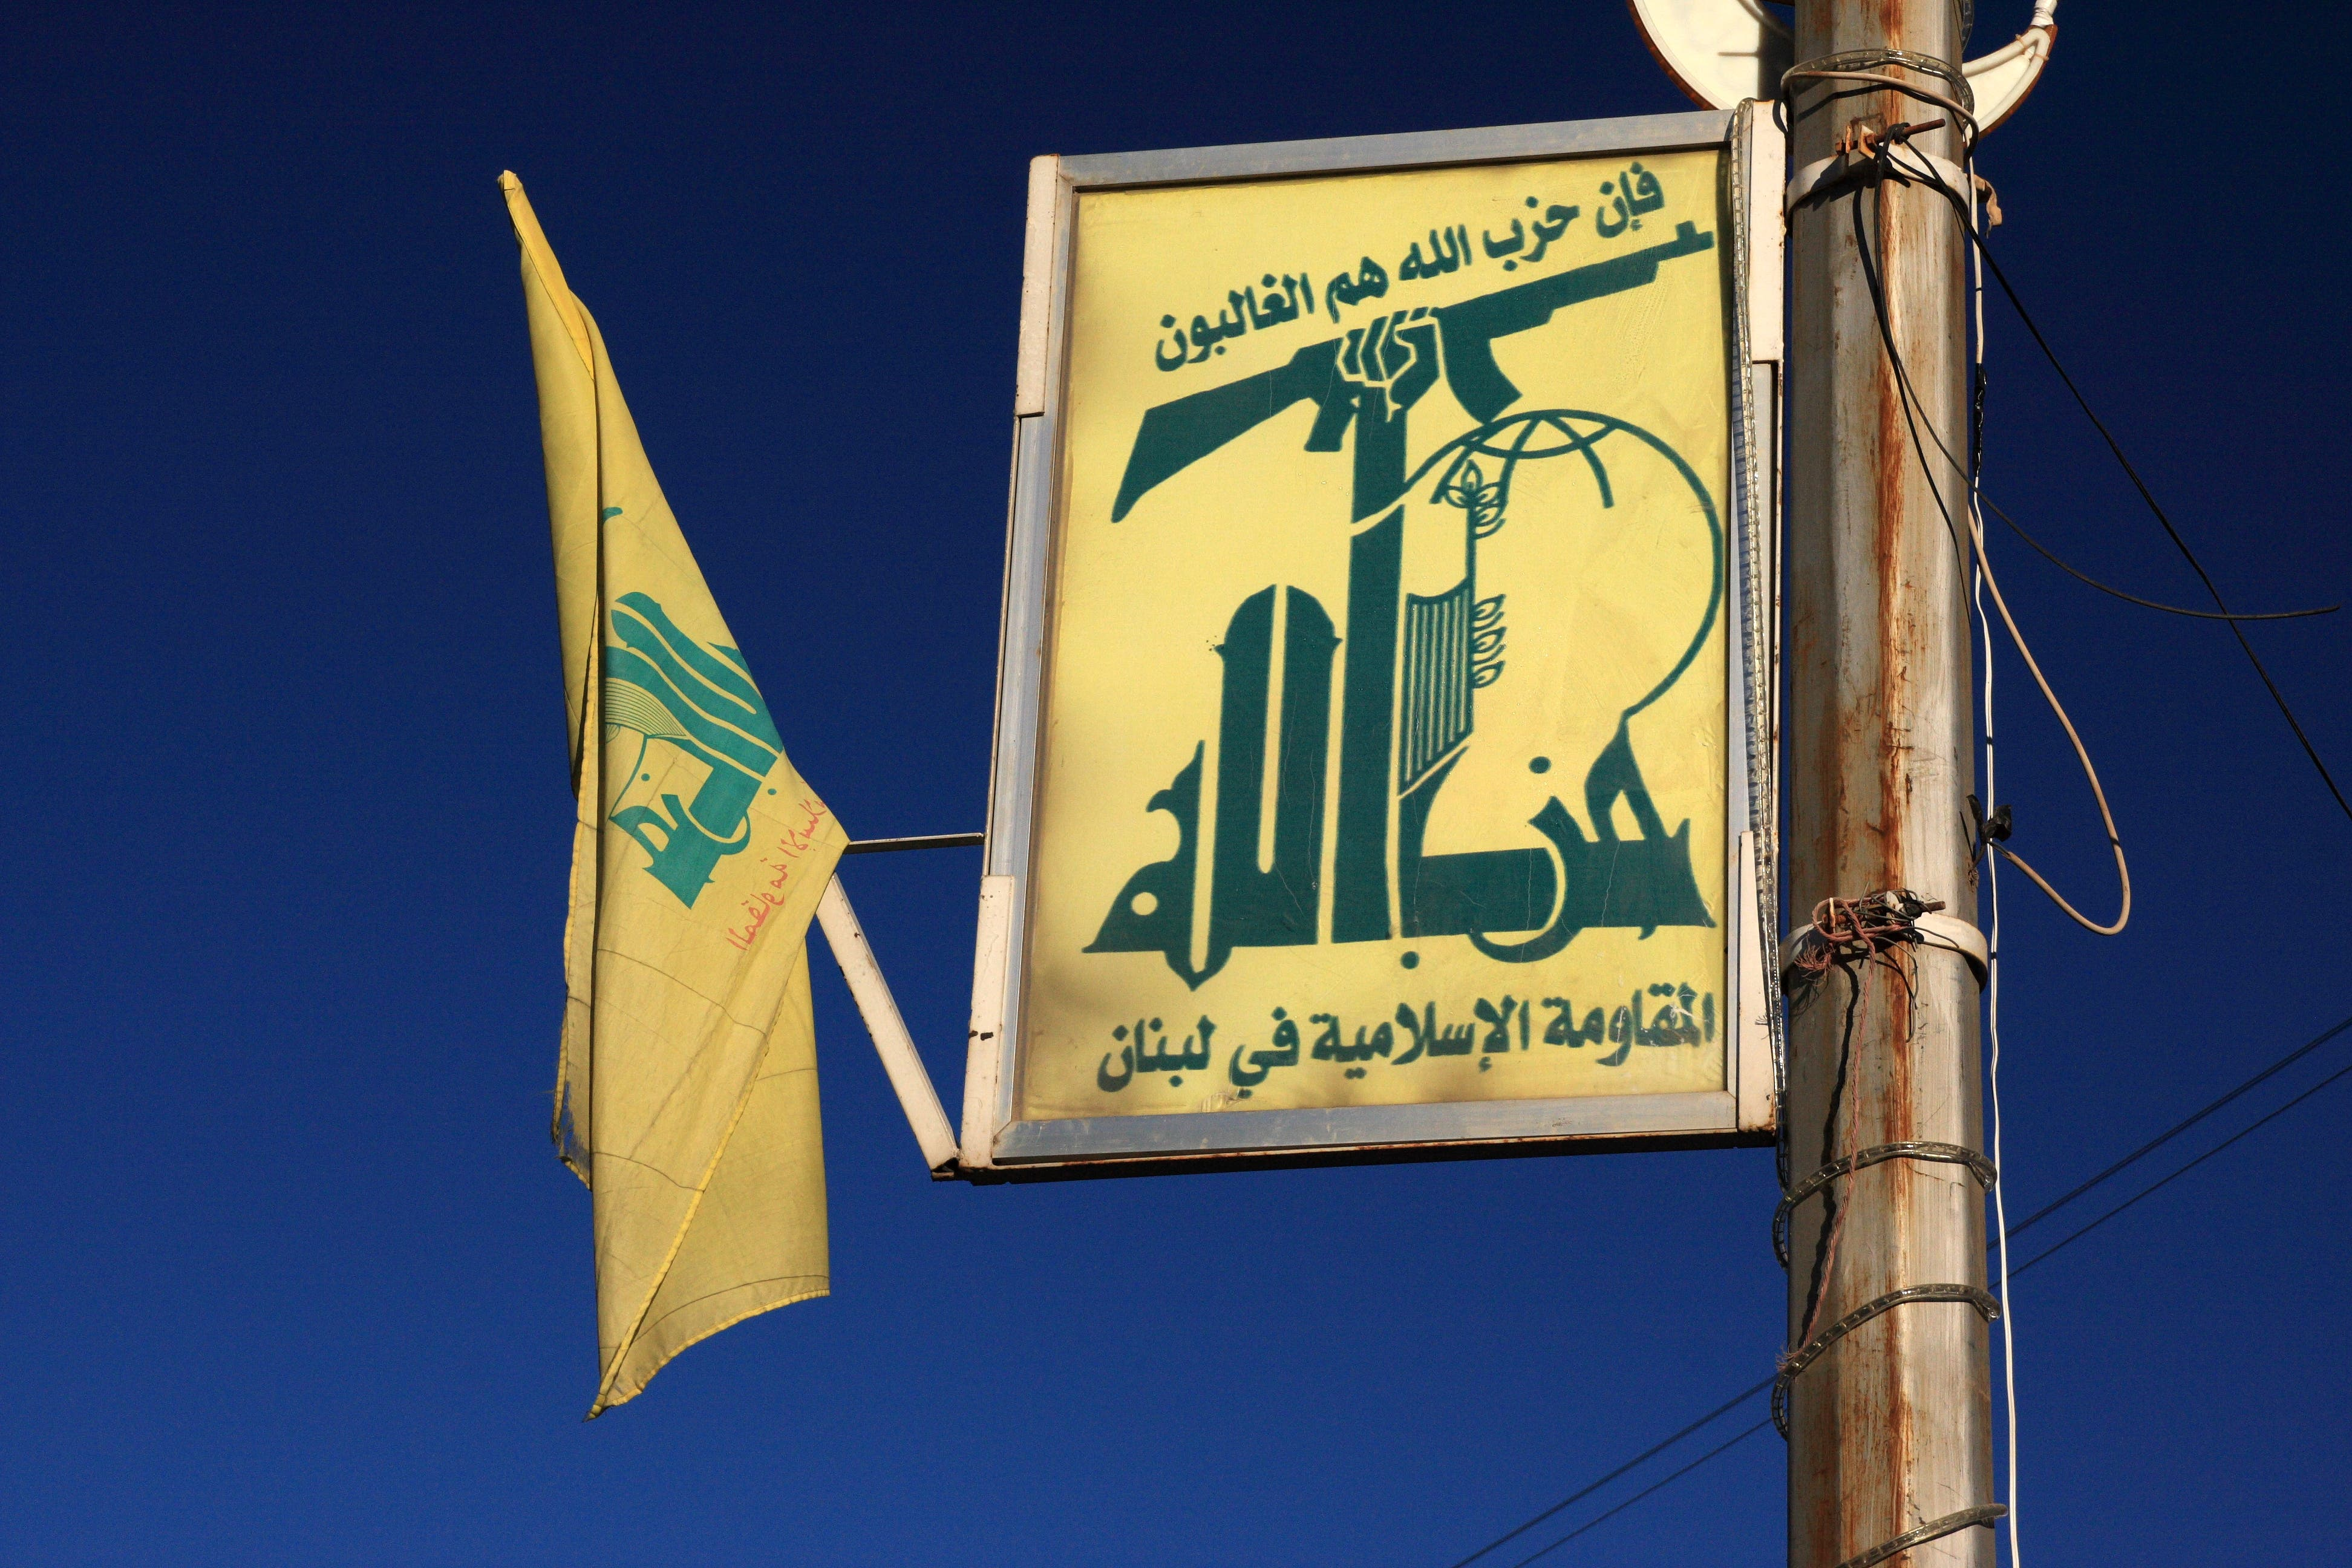 Lebanon has been targeted by a number of suicide bombers over Hezbollah's involvement in Syria. Last week, Hezbollah leader Hassan Nasrallah vowed that his group would keep fighting in Lebanon's war torn neighbor. (AFP/File)